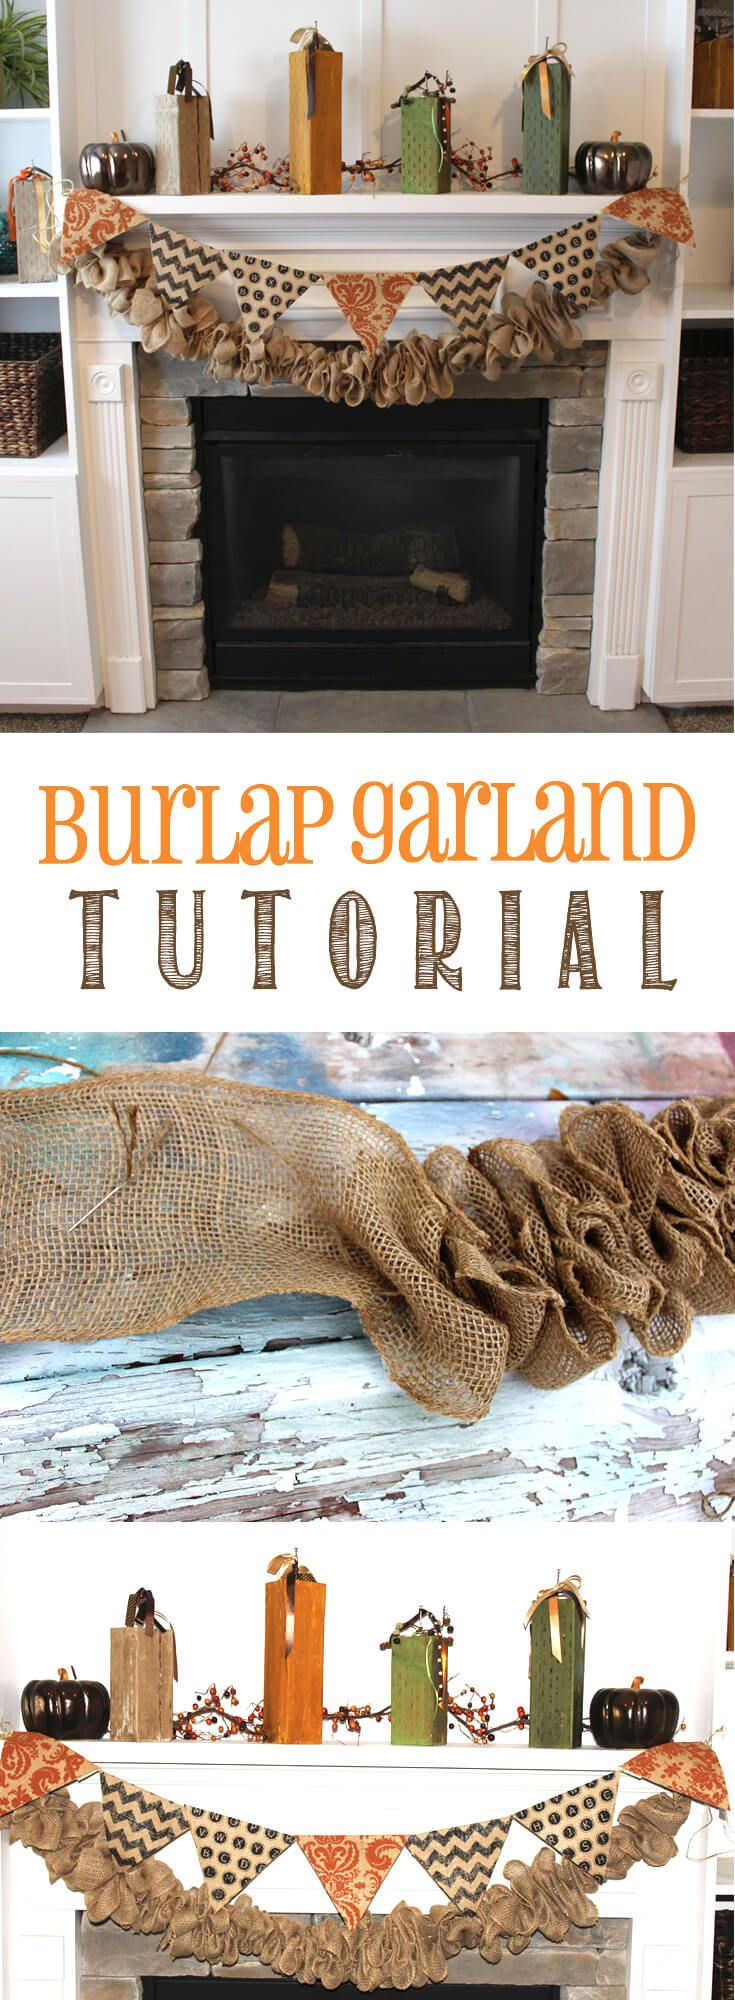 25+ unique Fall garland ideas on Pinterest | How to preserve ...